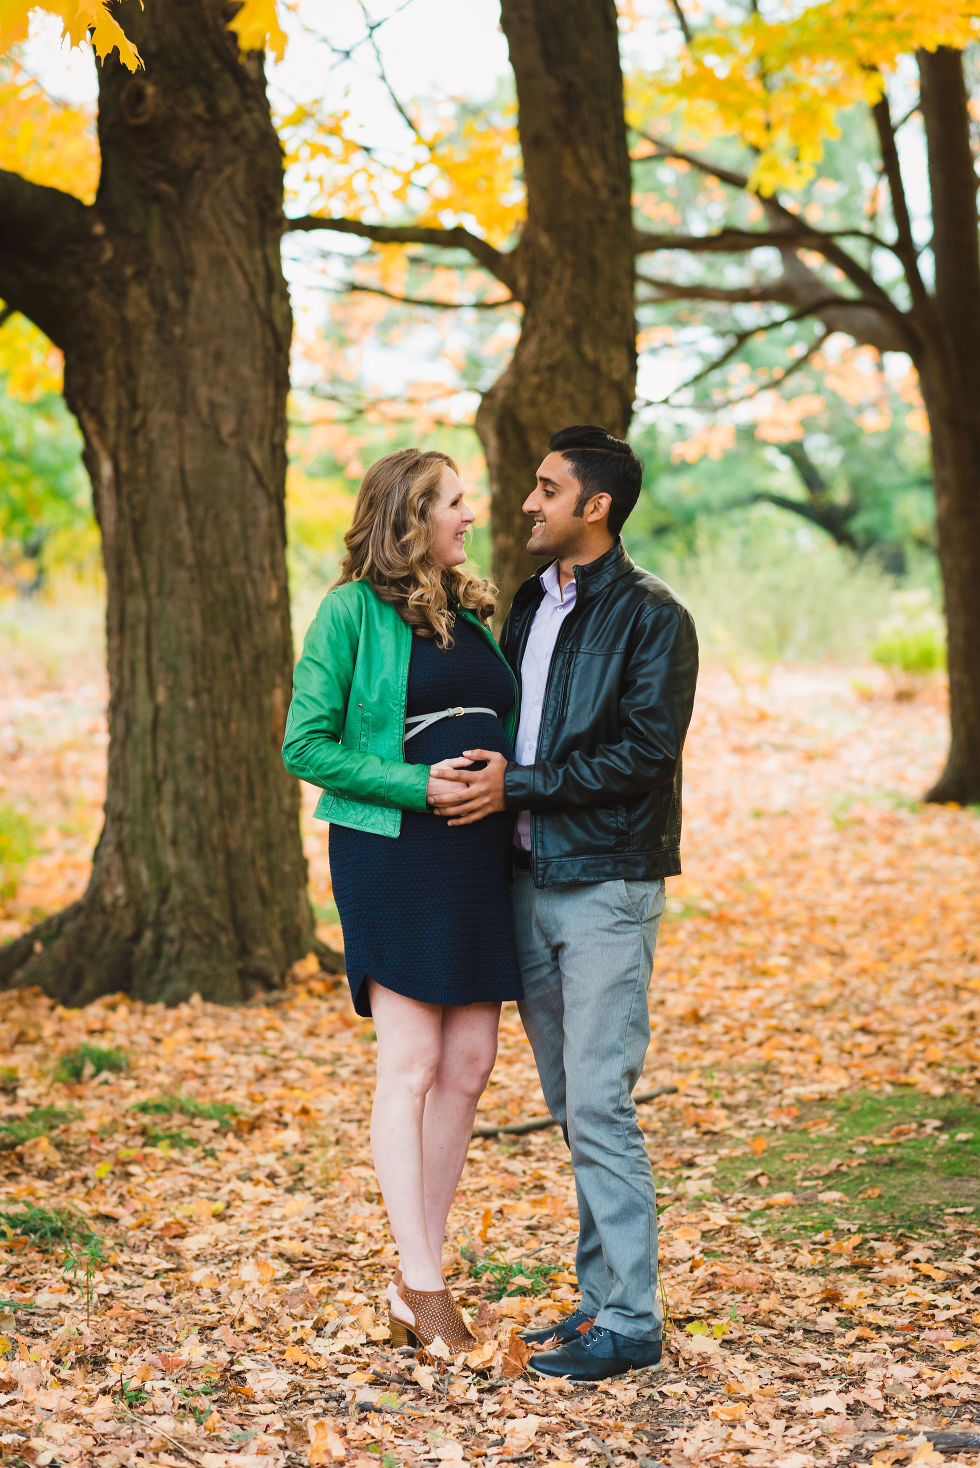 pregnant couple embracing each other under autumn leaves in High Park, Toronto